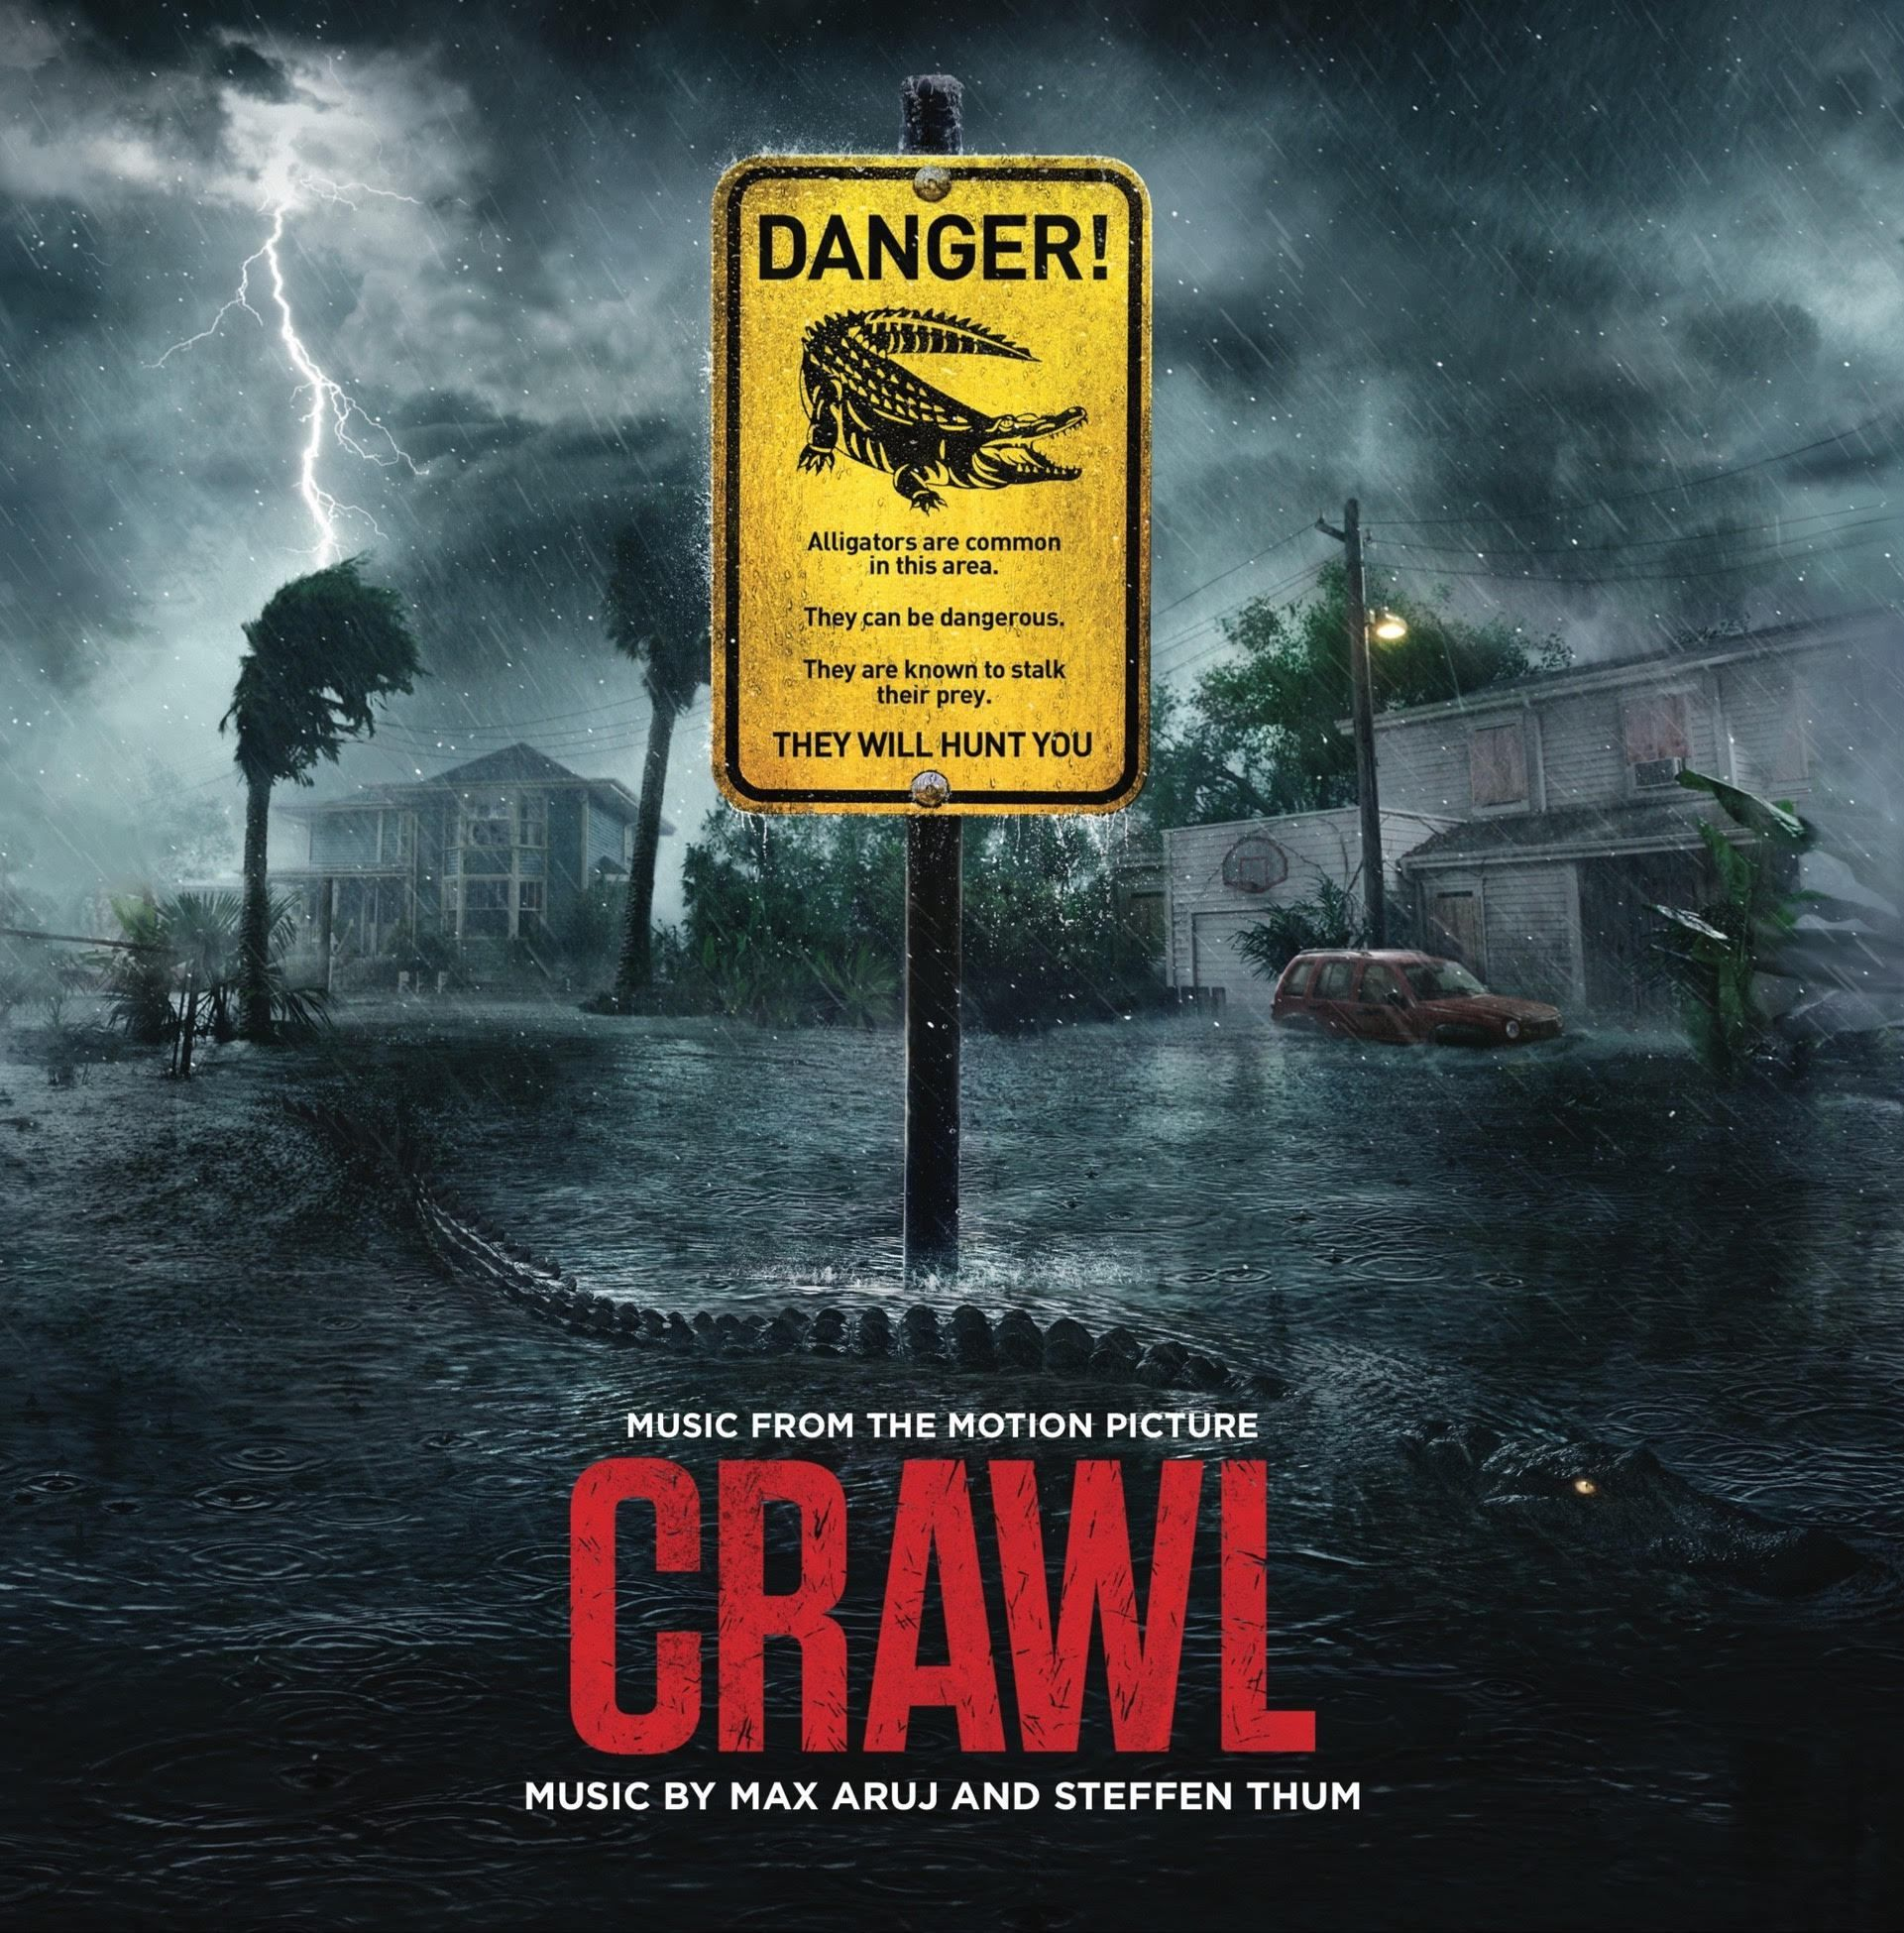 Crawl Music From The Motion Picture Lp In 2021 Full Movies Movies Online Full Movies Online Free